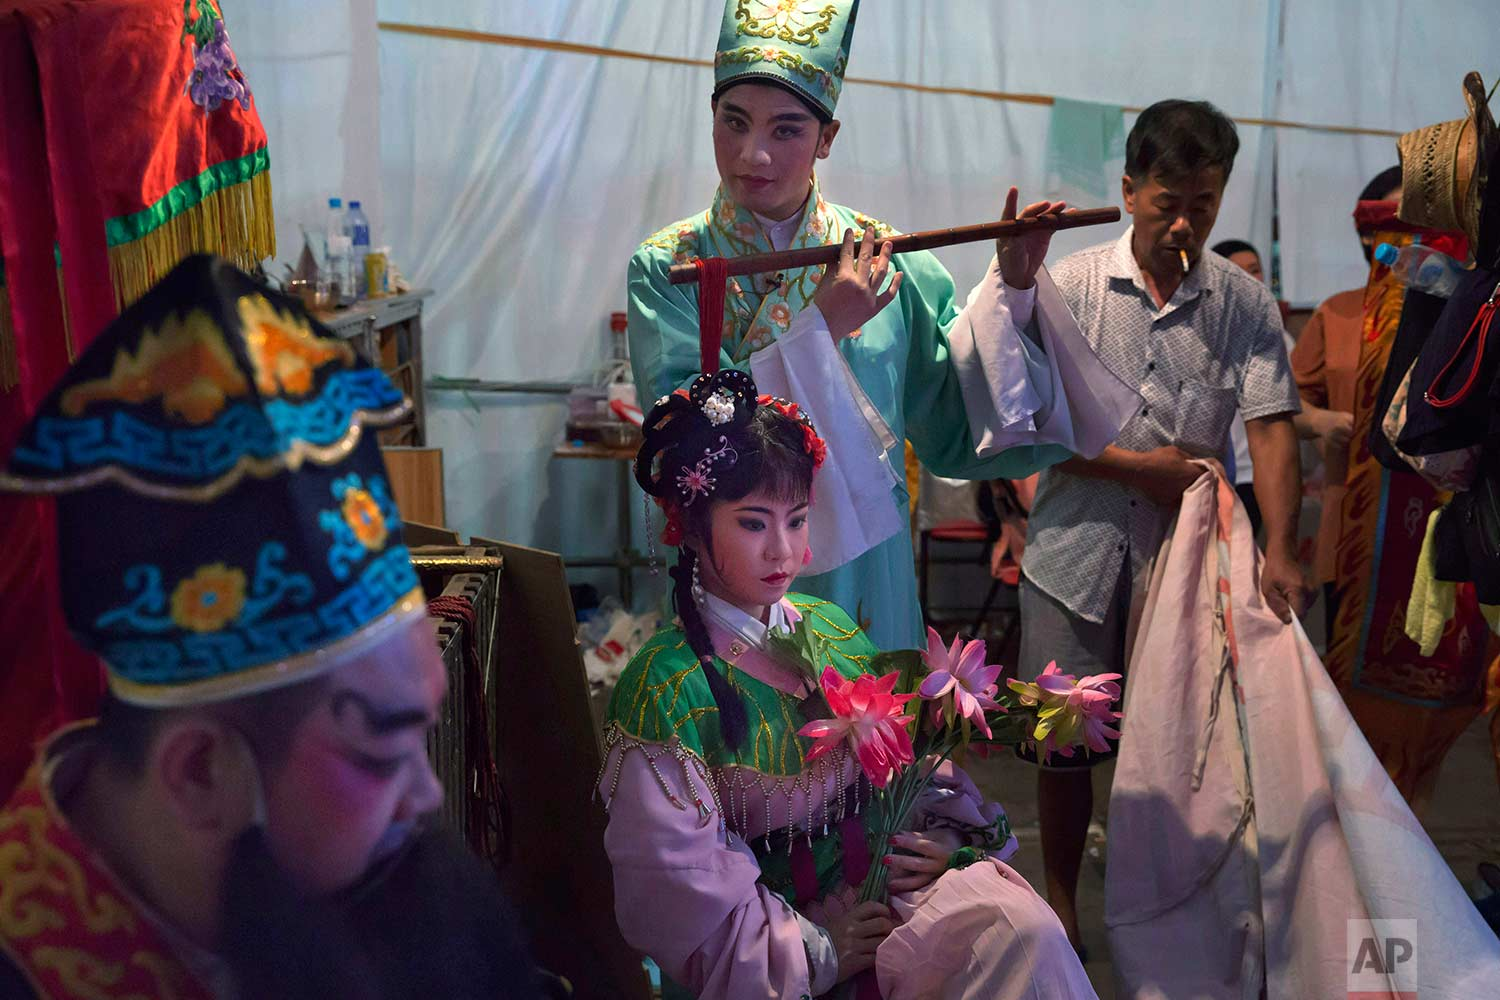 """In this Aug. 30, 2017, photo, Chinese opera performers wait at a makeshift theater during the """"Hungry Ghost Festival"""" in Hong Kong. (AP Photo/Kin Cheung)"""